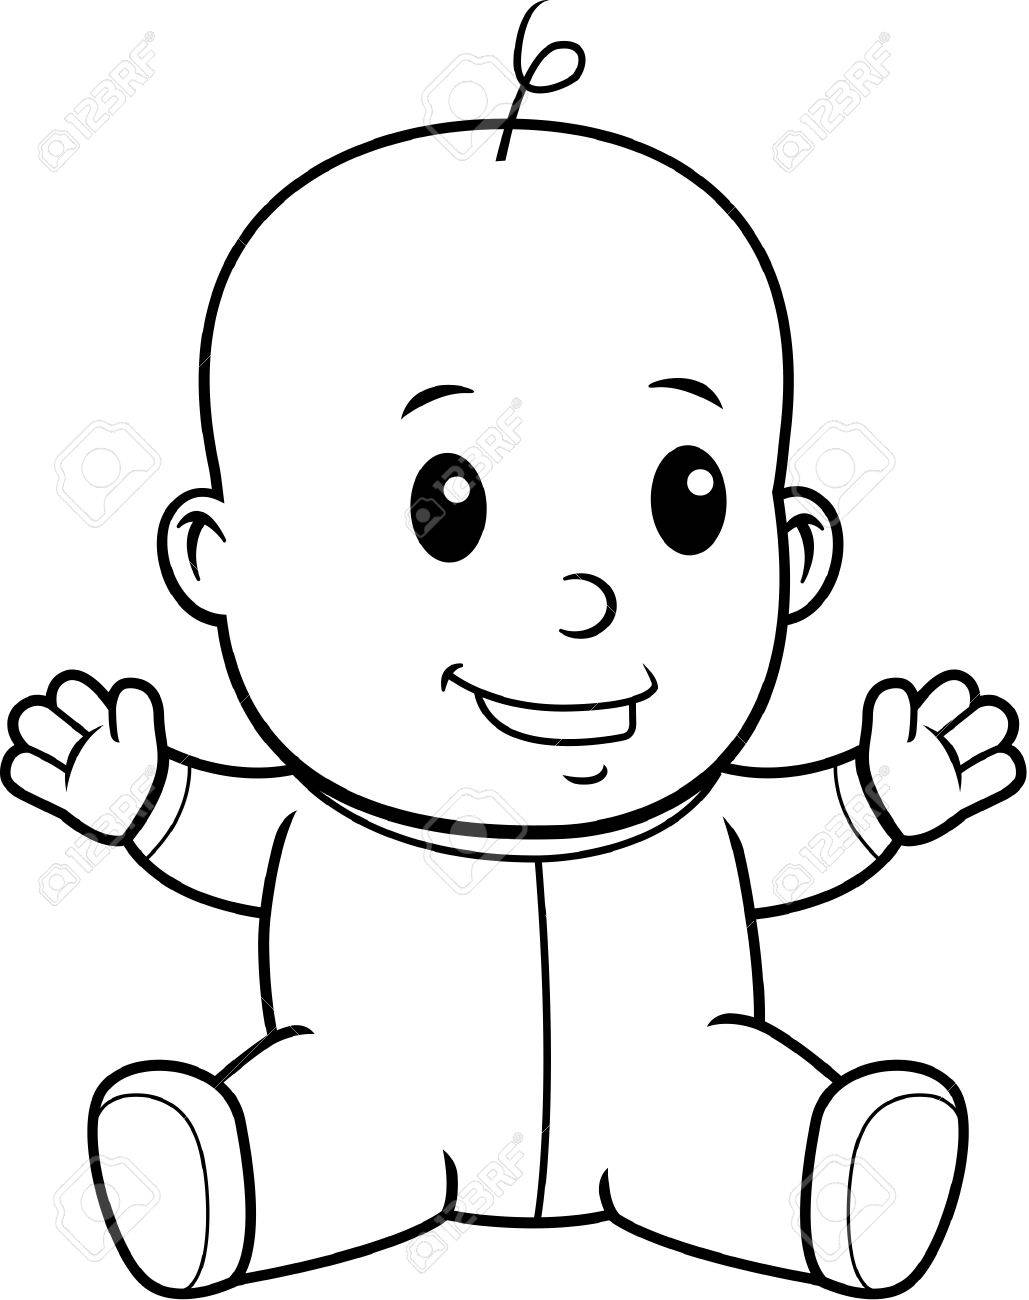 1029x1300 A Happy Cartoon Baby Sitting And Smiling. Royalty Free Cliparts